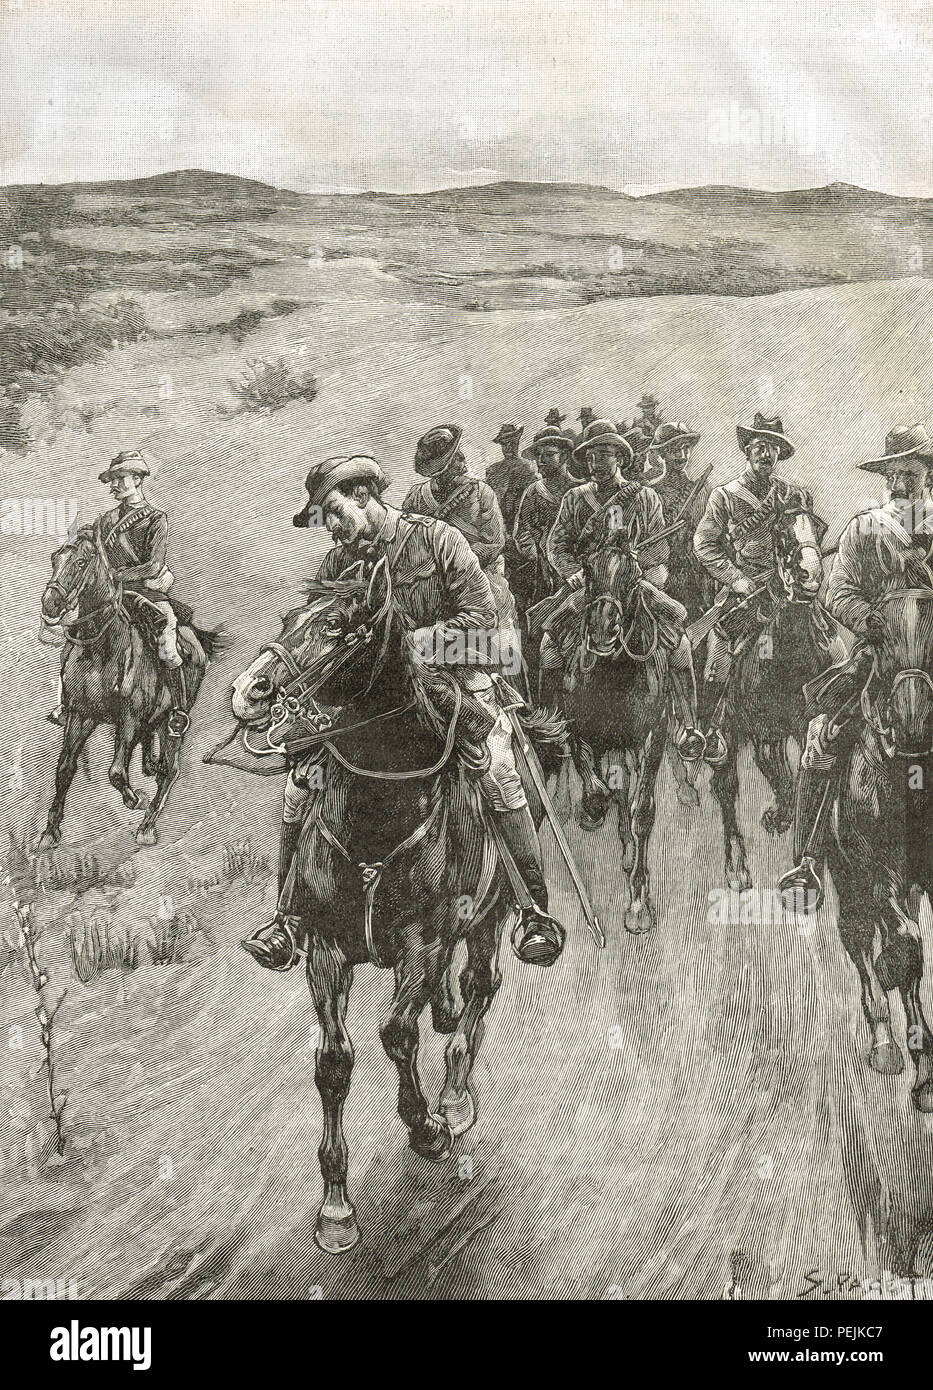 The Shangani Patrol, also known as Wilson's Patrol, in pursuit of the the Matabele King Lobengula, 1893, during the First Matabele War - Stock Image